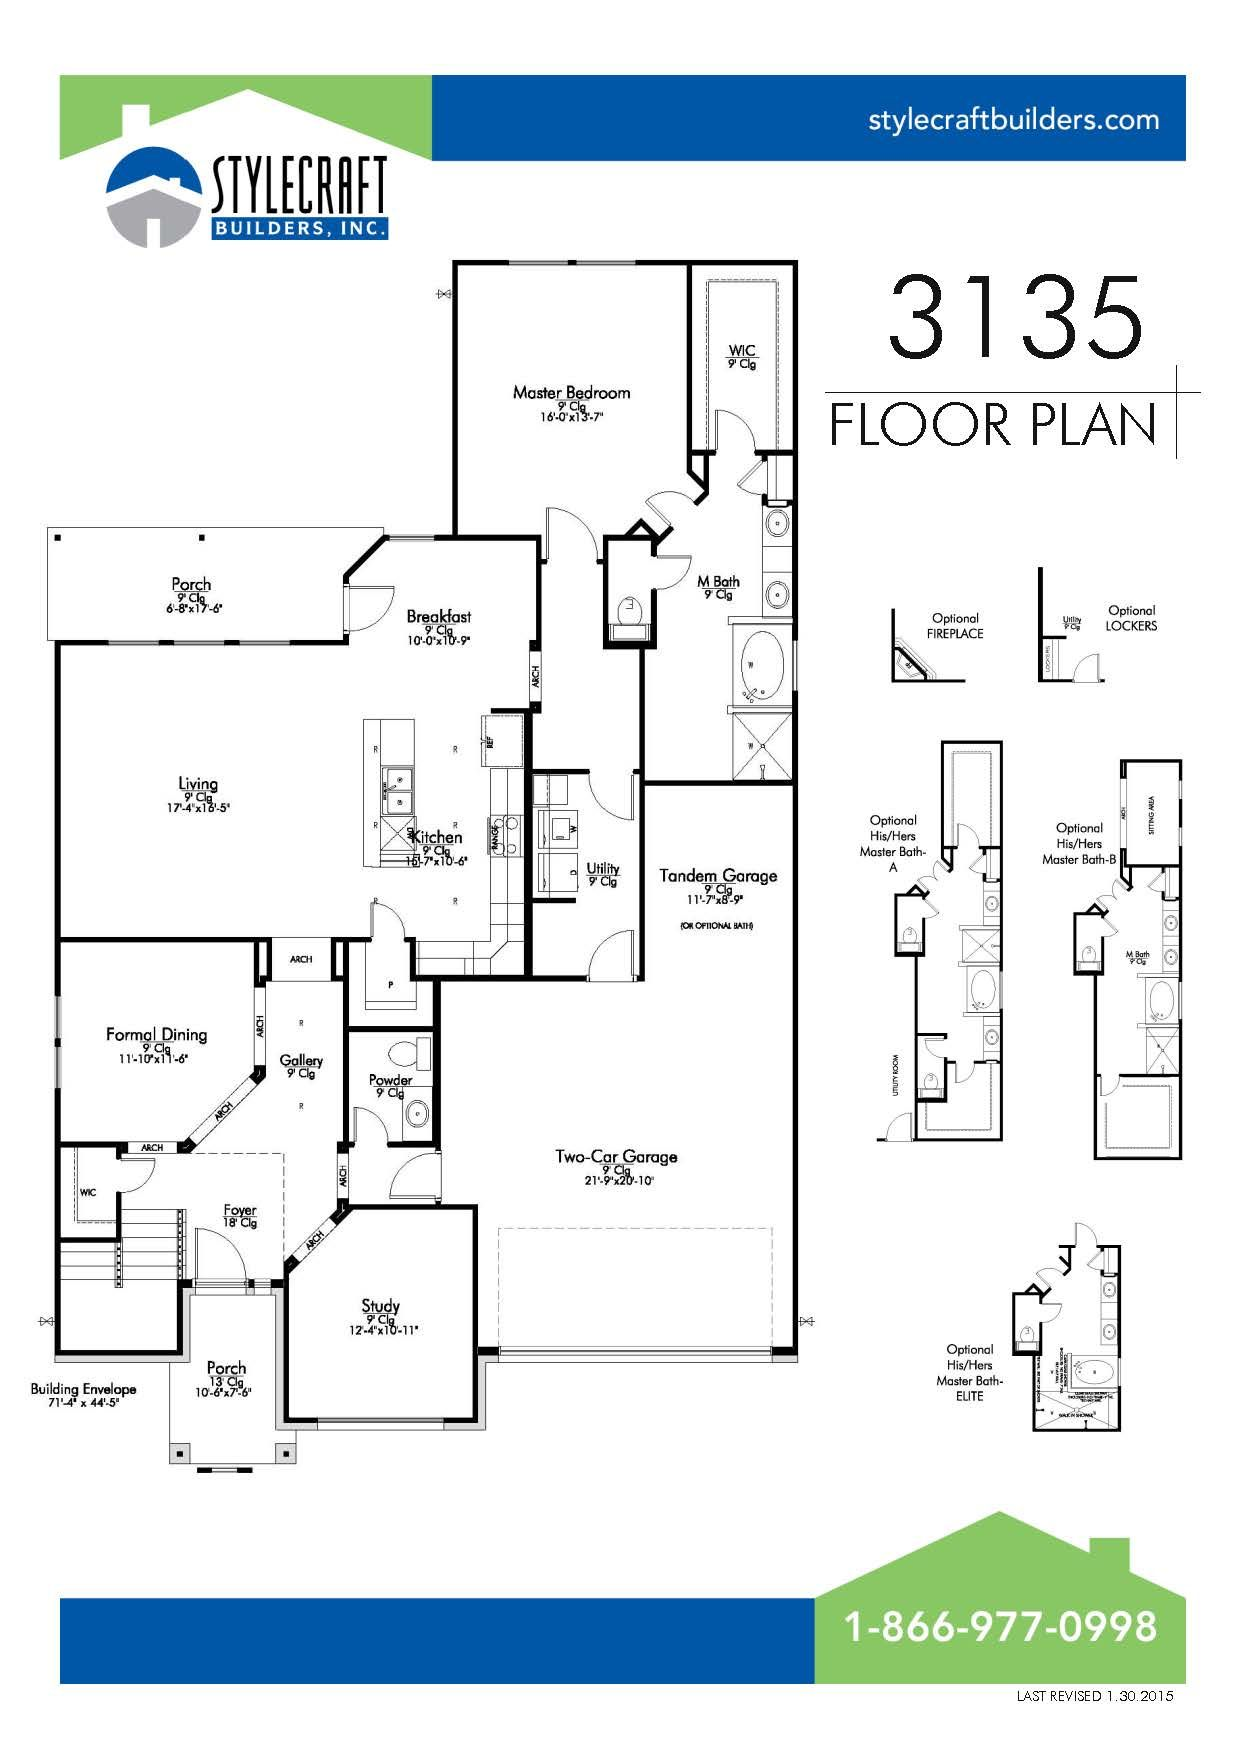 3135 Floor Plan Bridgewood Community Stylecraft Builders